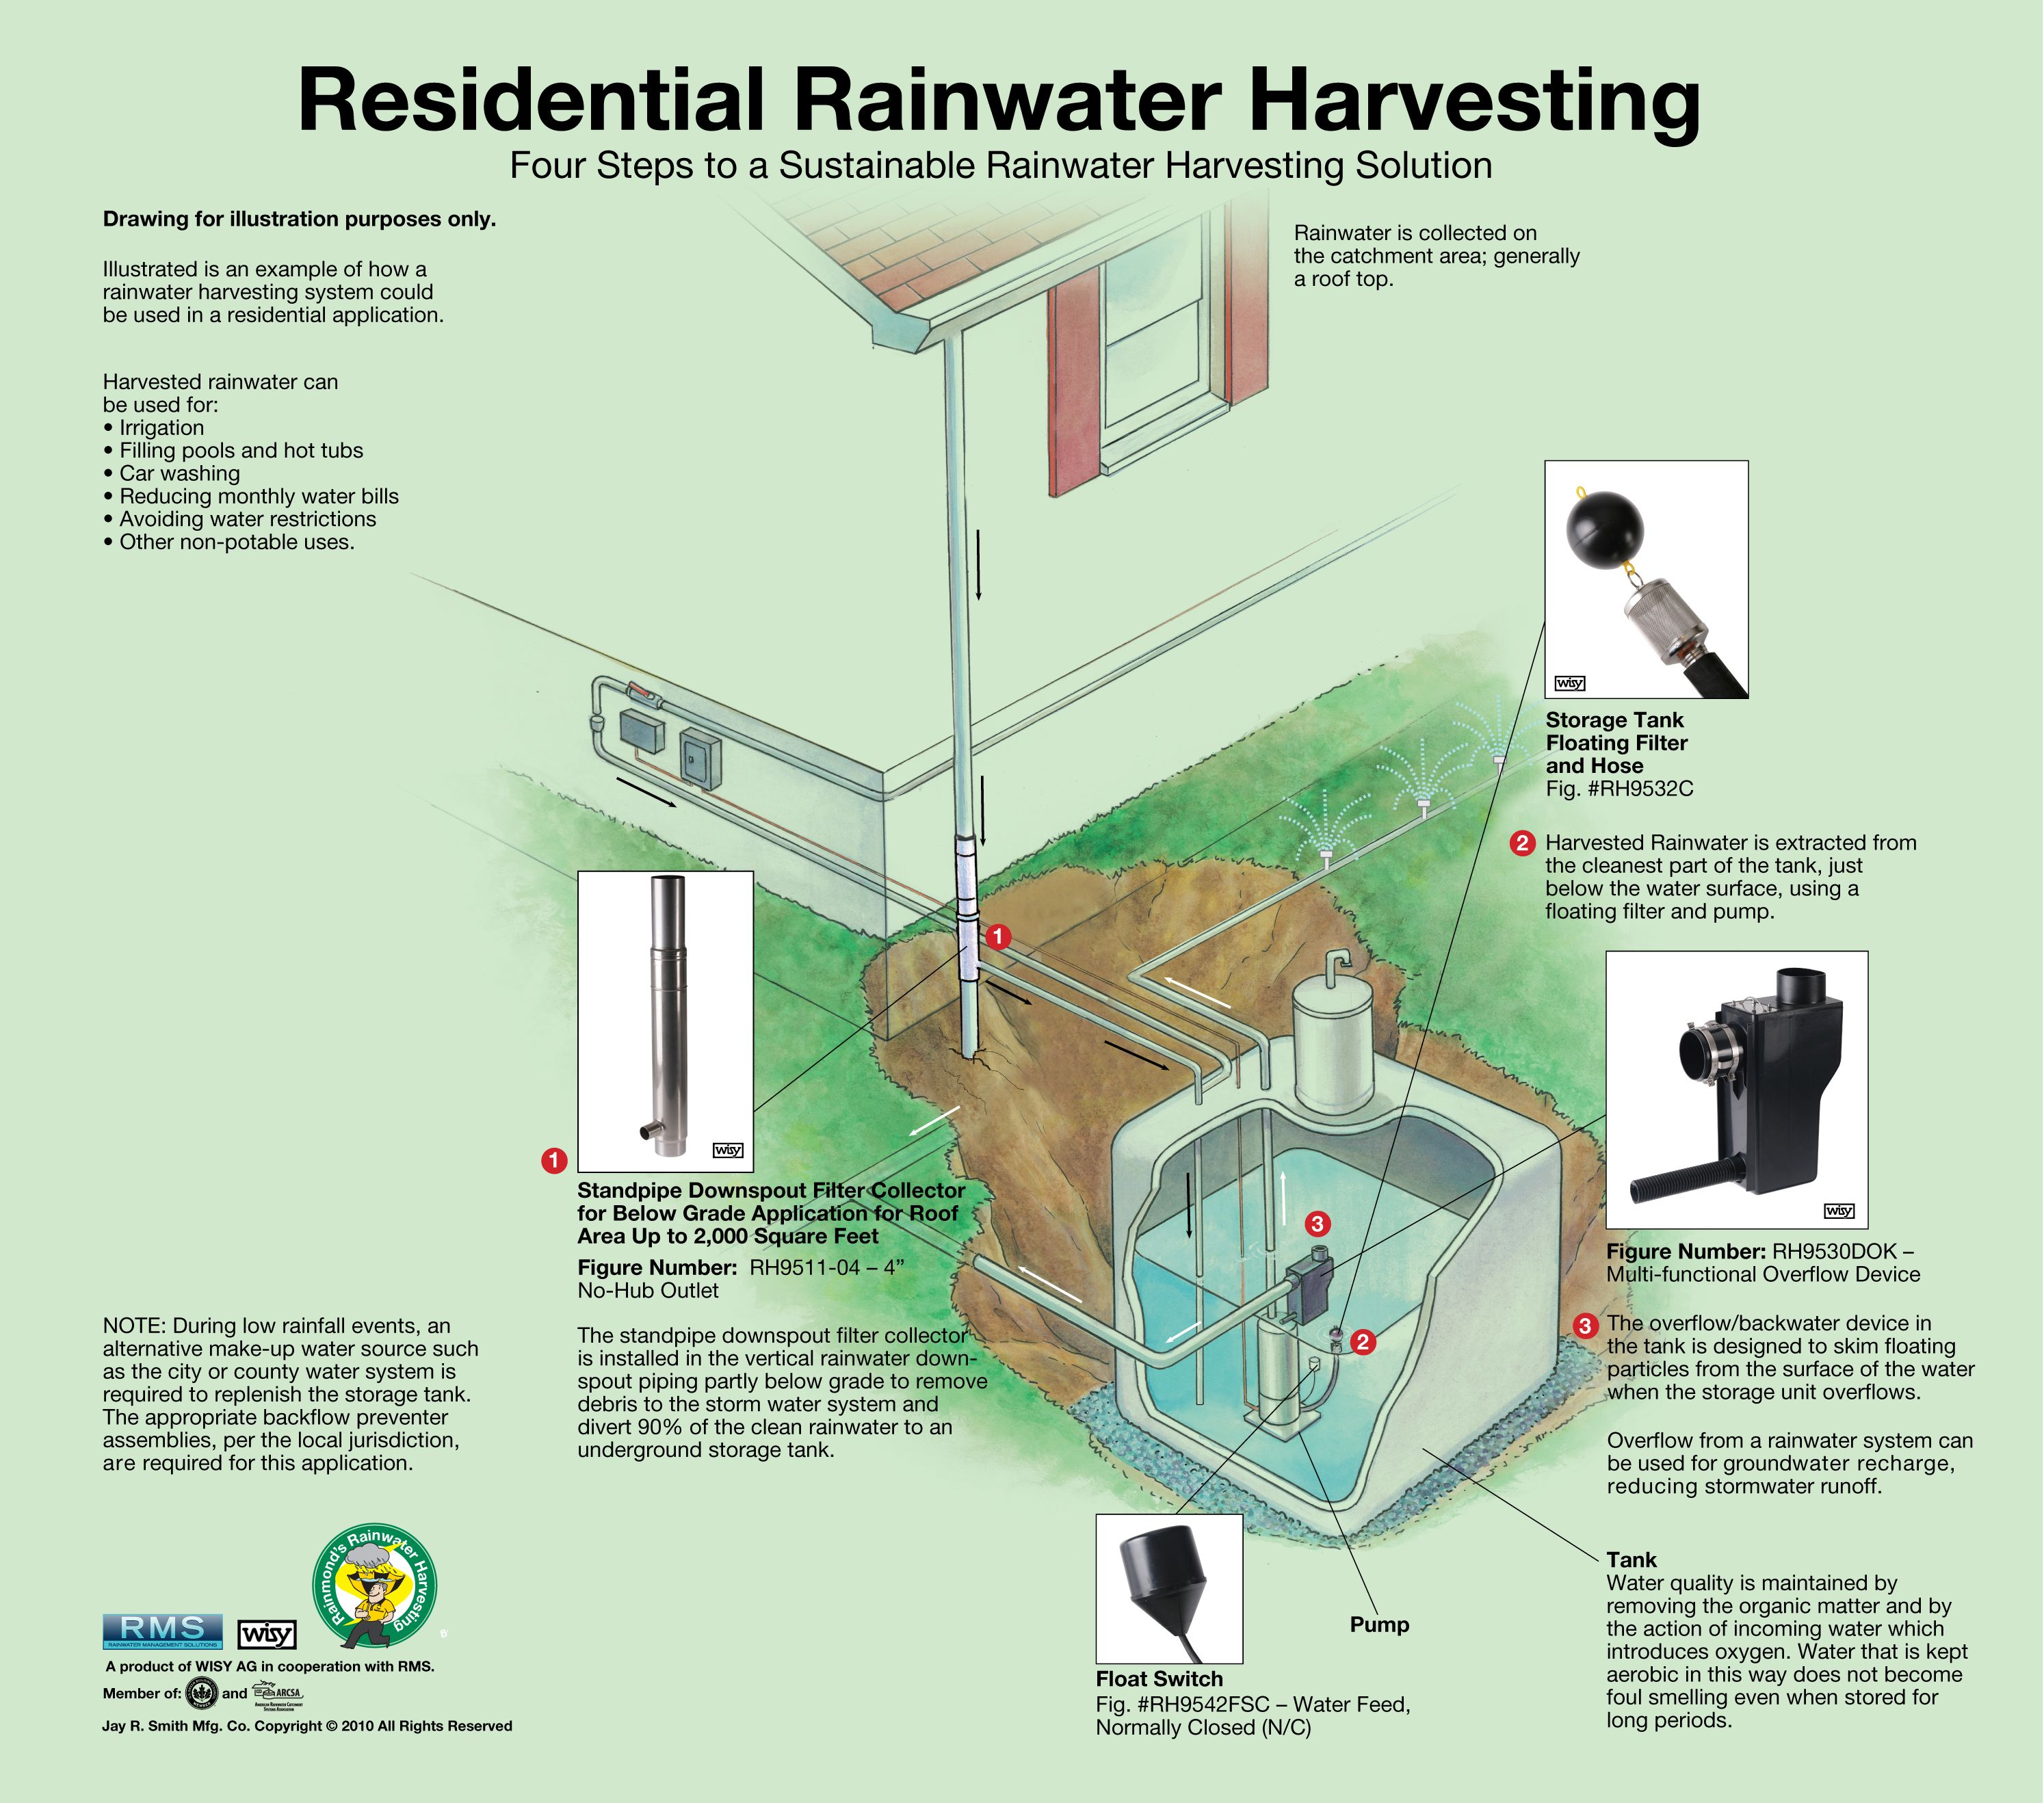 Four Steps To A Sustainable Rainwater Harvesting Solution